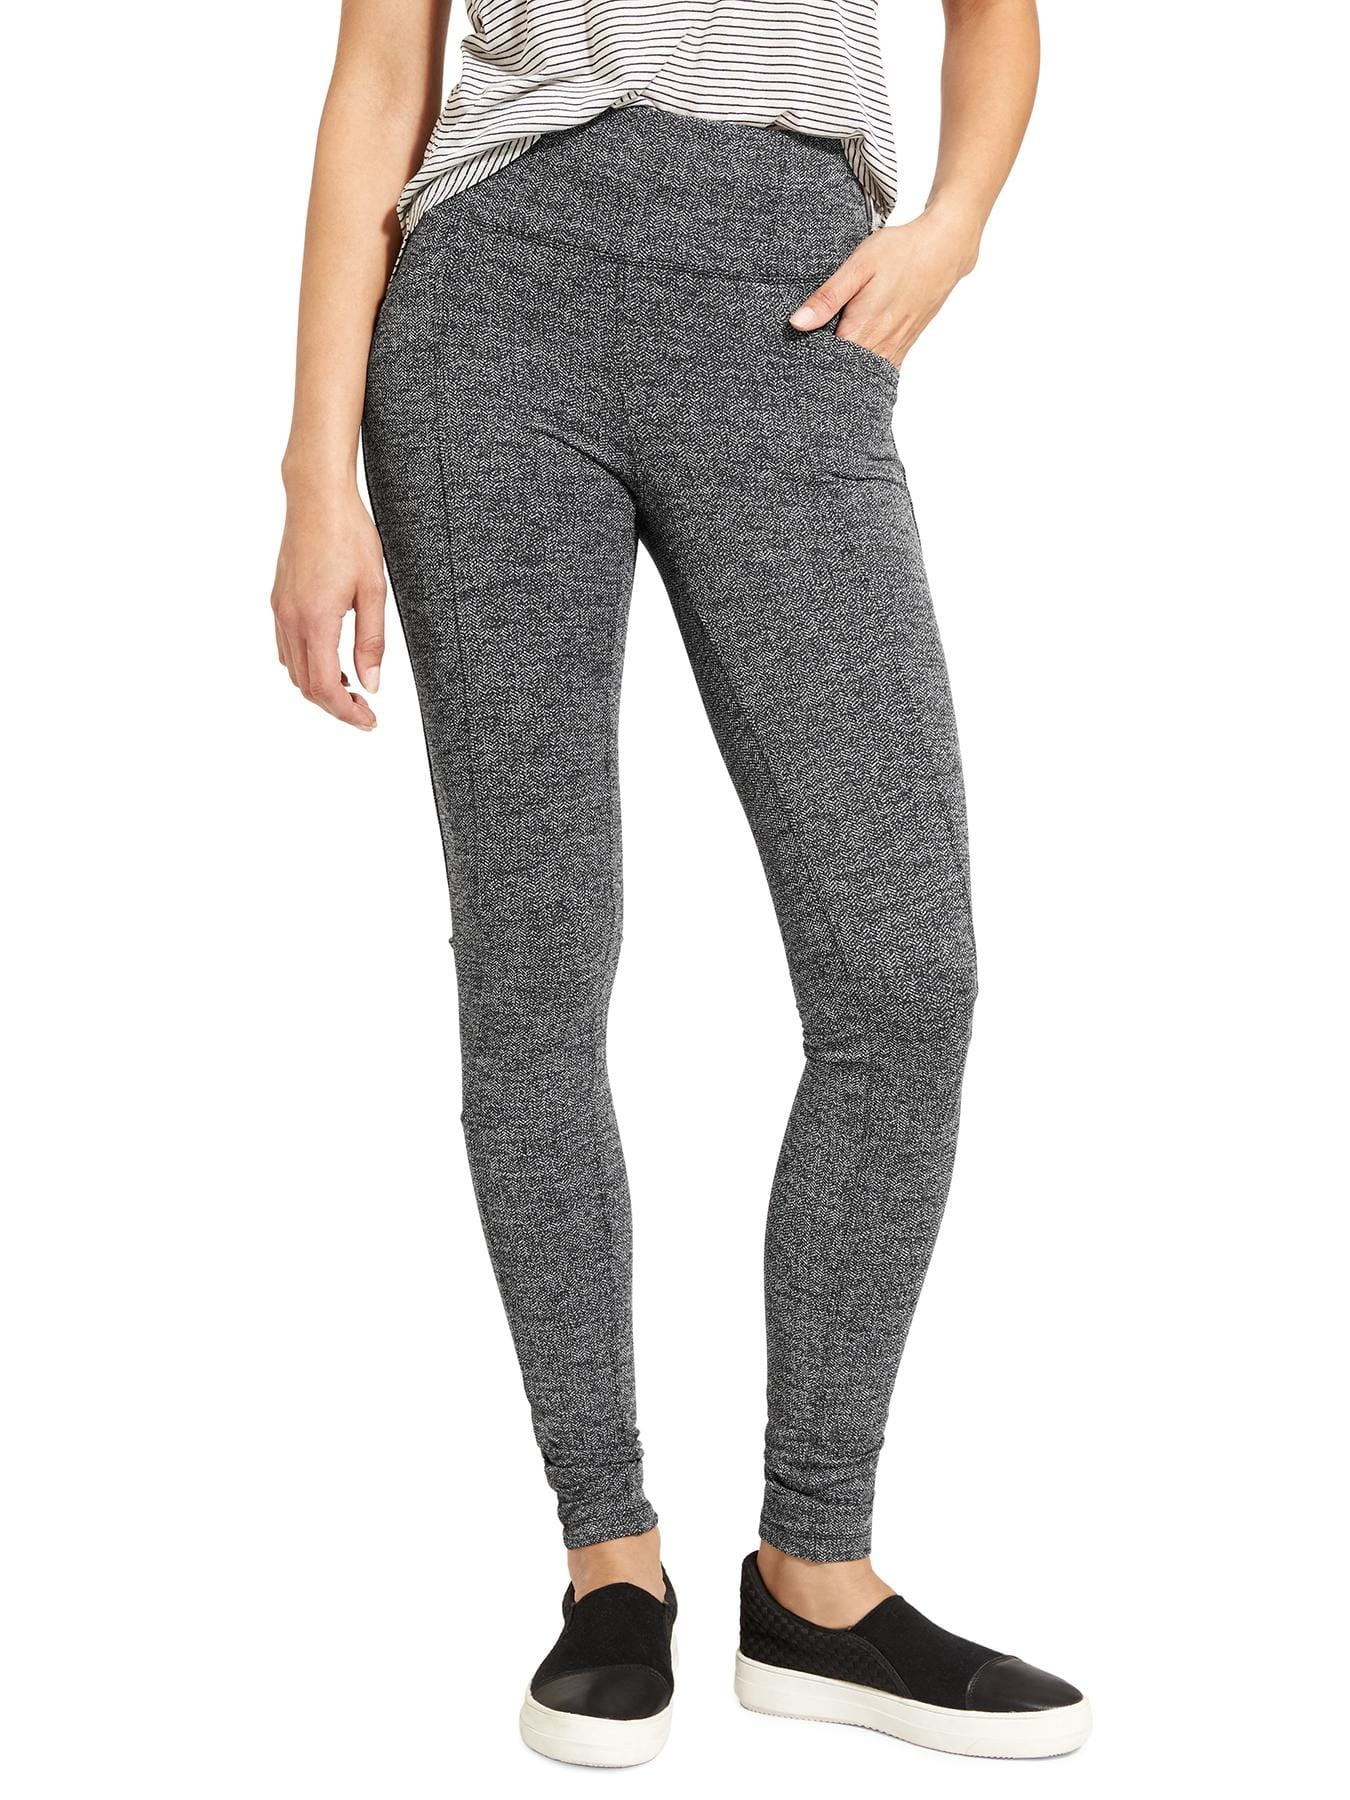 Athleta Herringbone Leggings